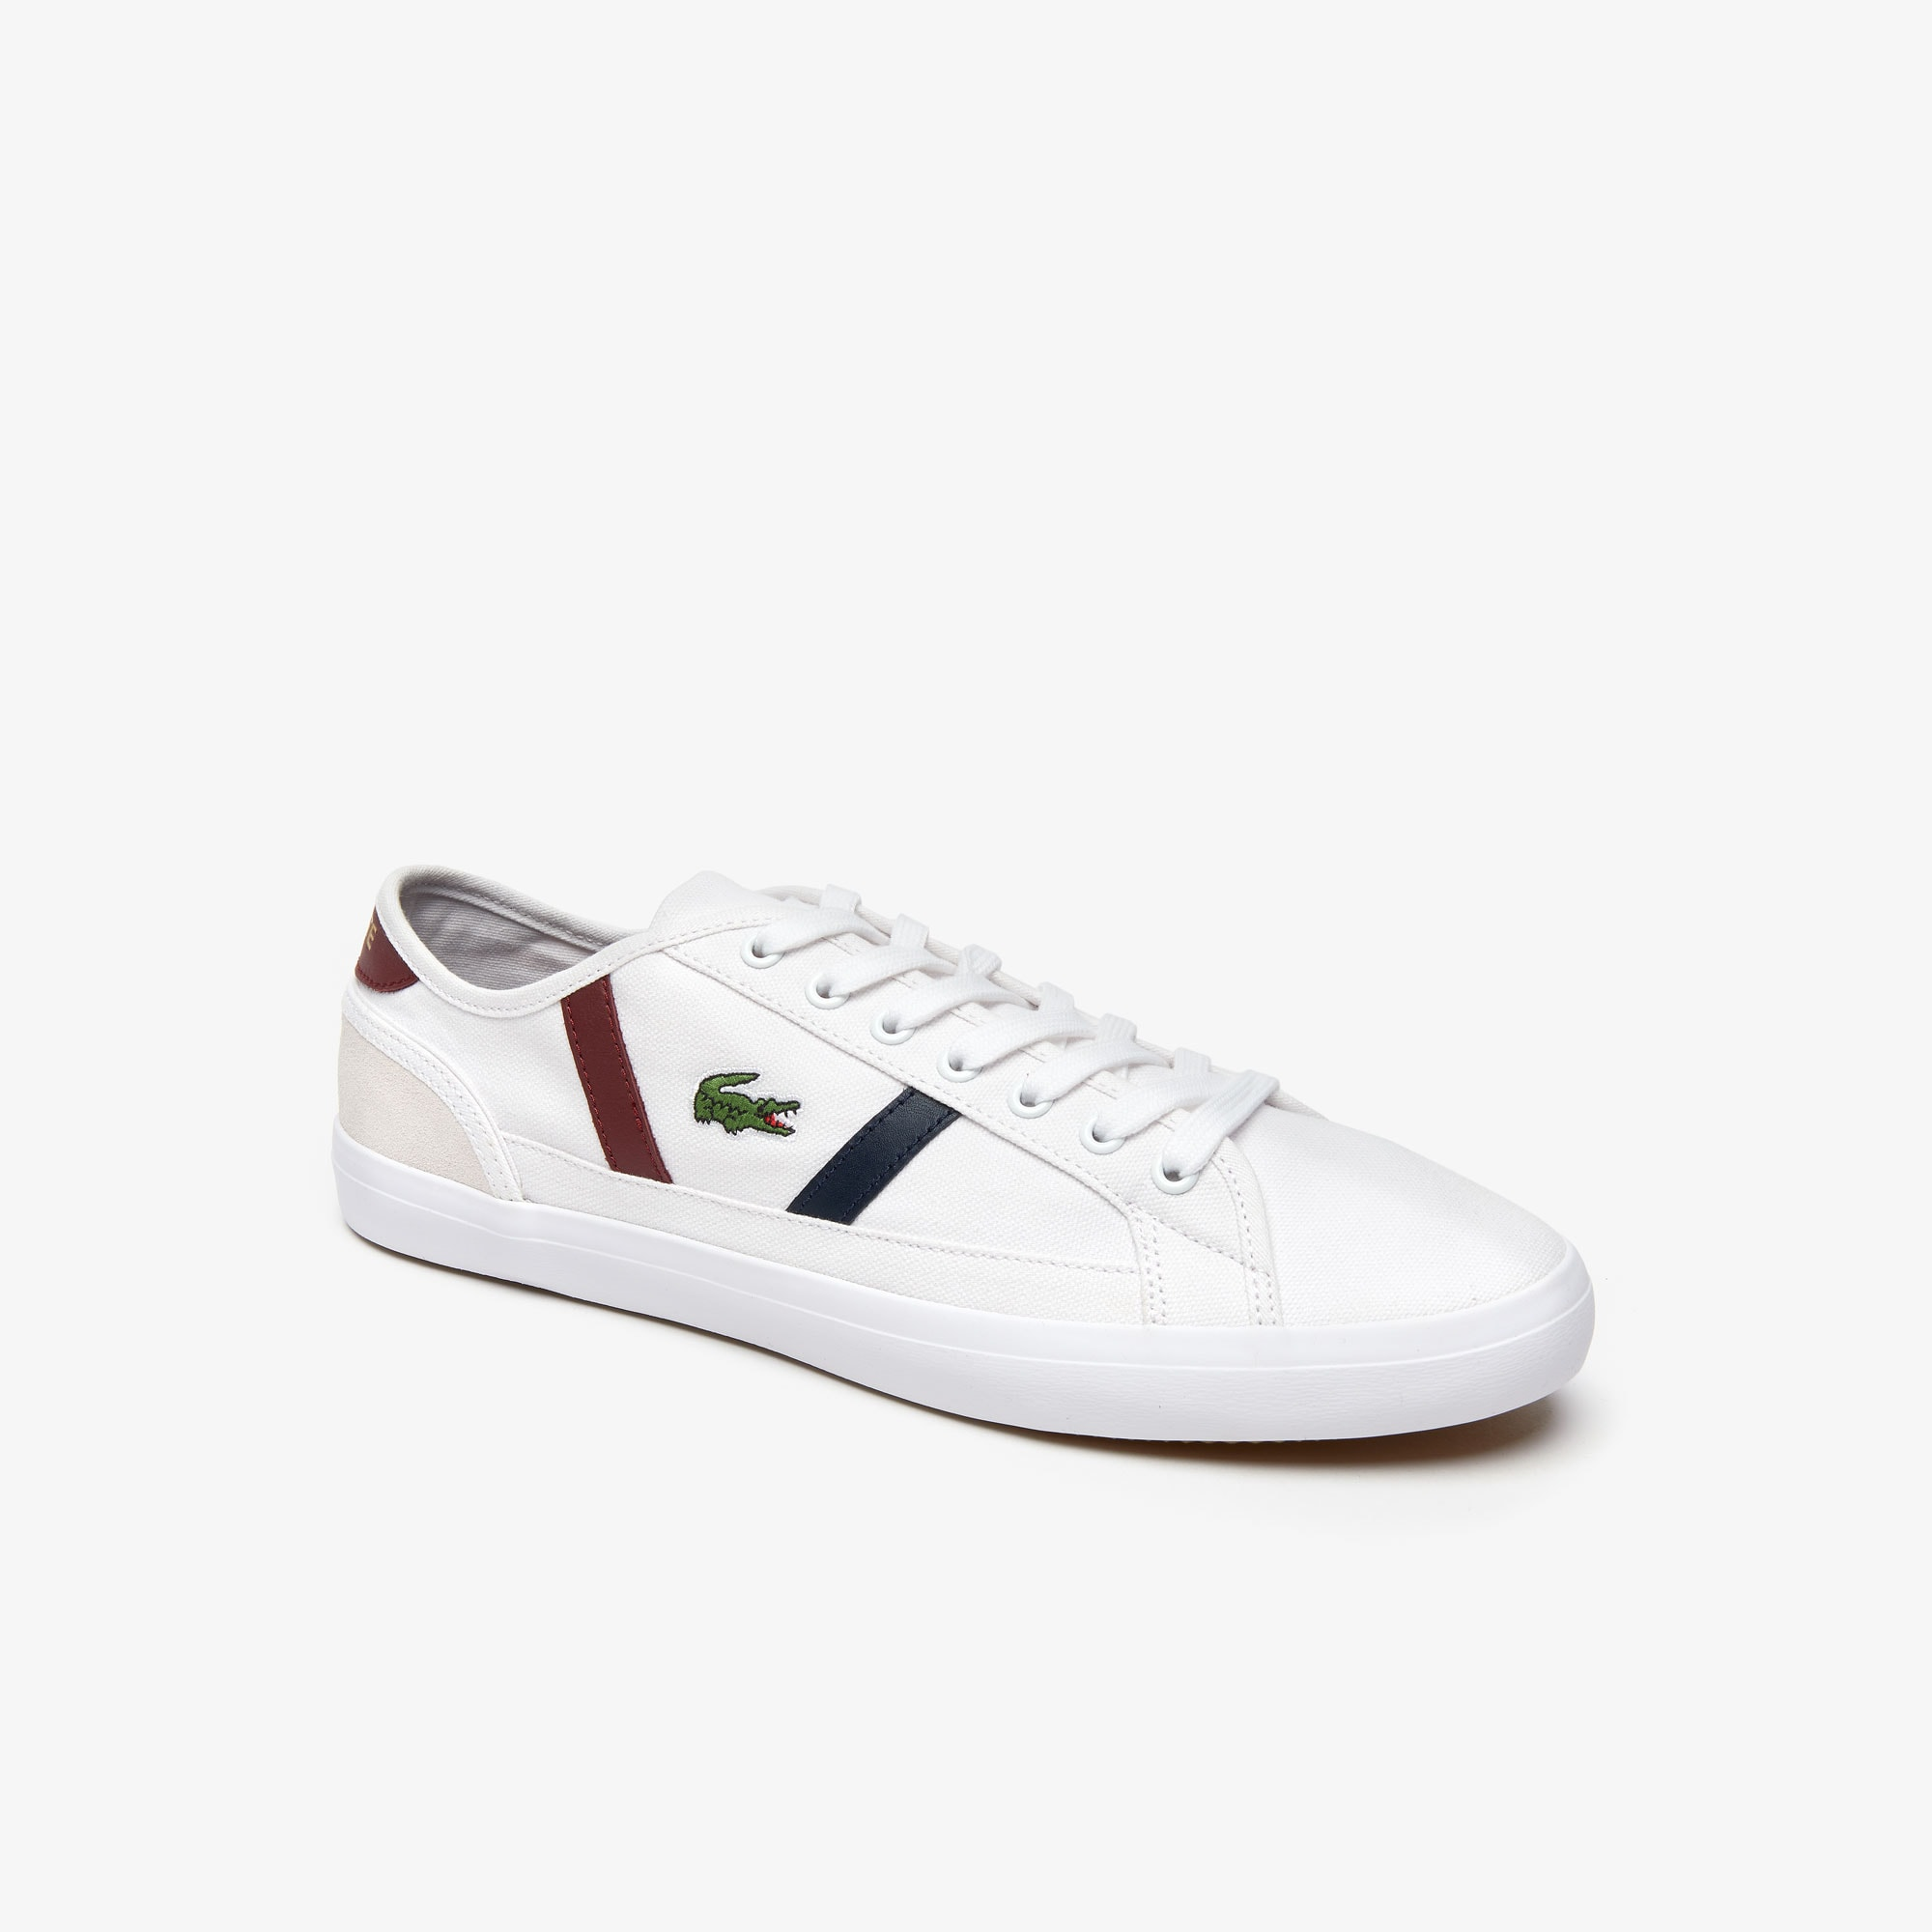 4a28aafeedd0 Chaussures homme | Collection Homme | LACOSTE